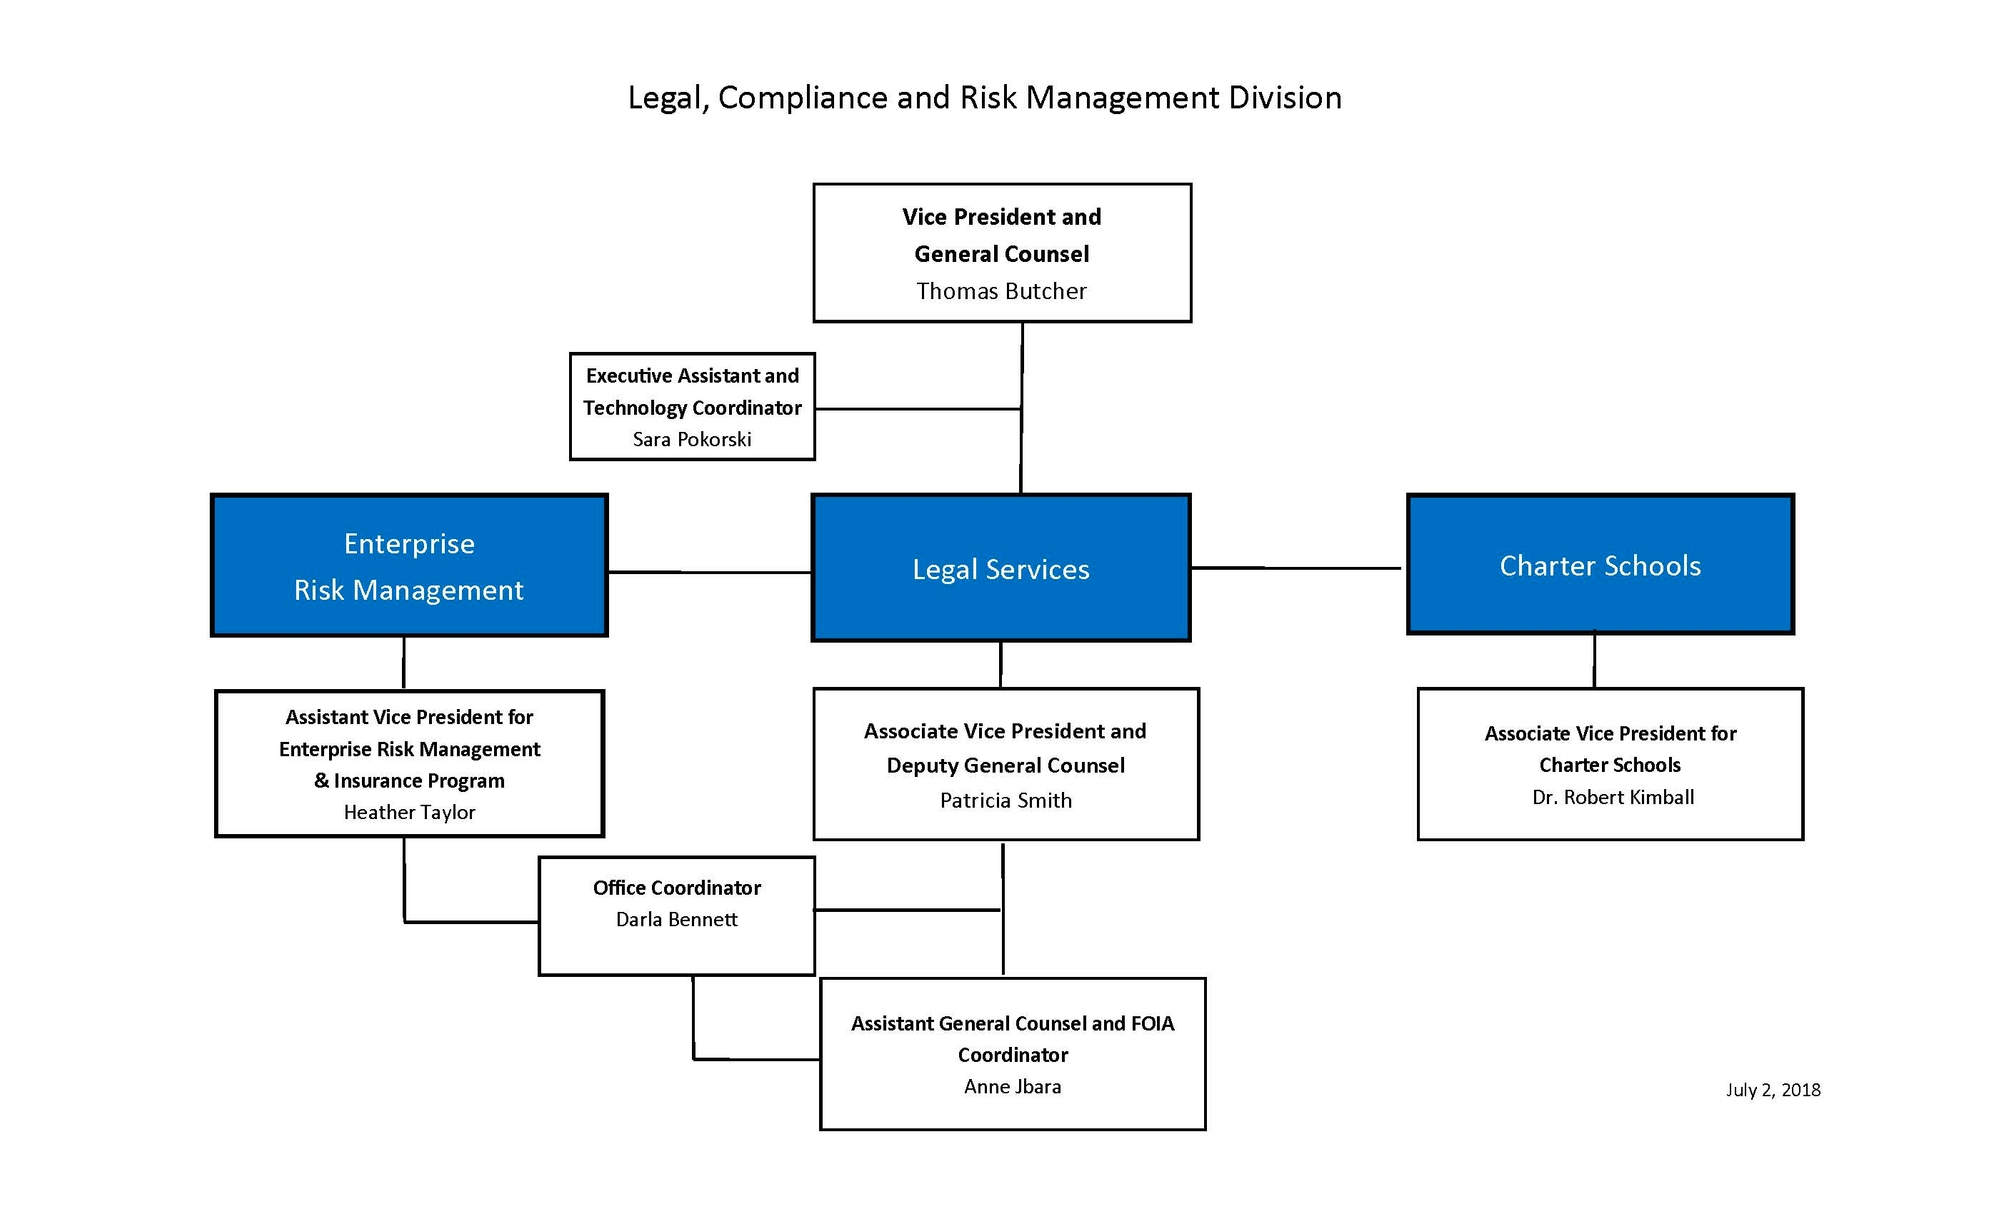 LCRM Org Chart